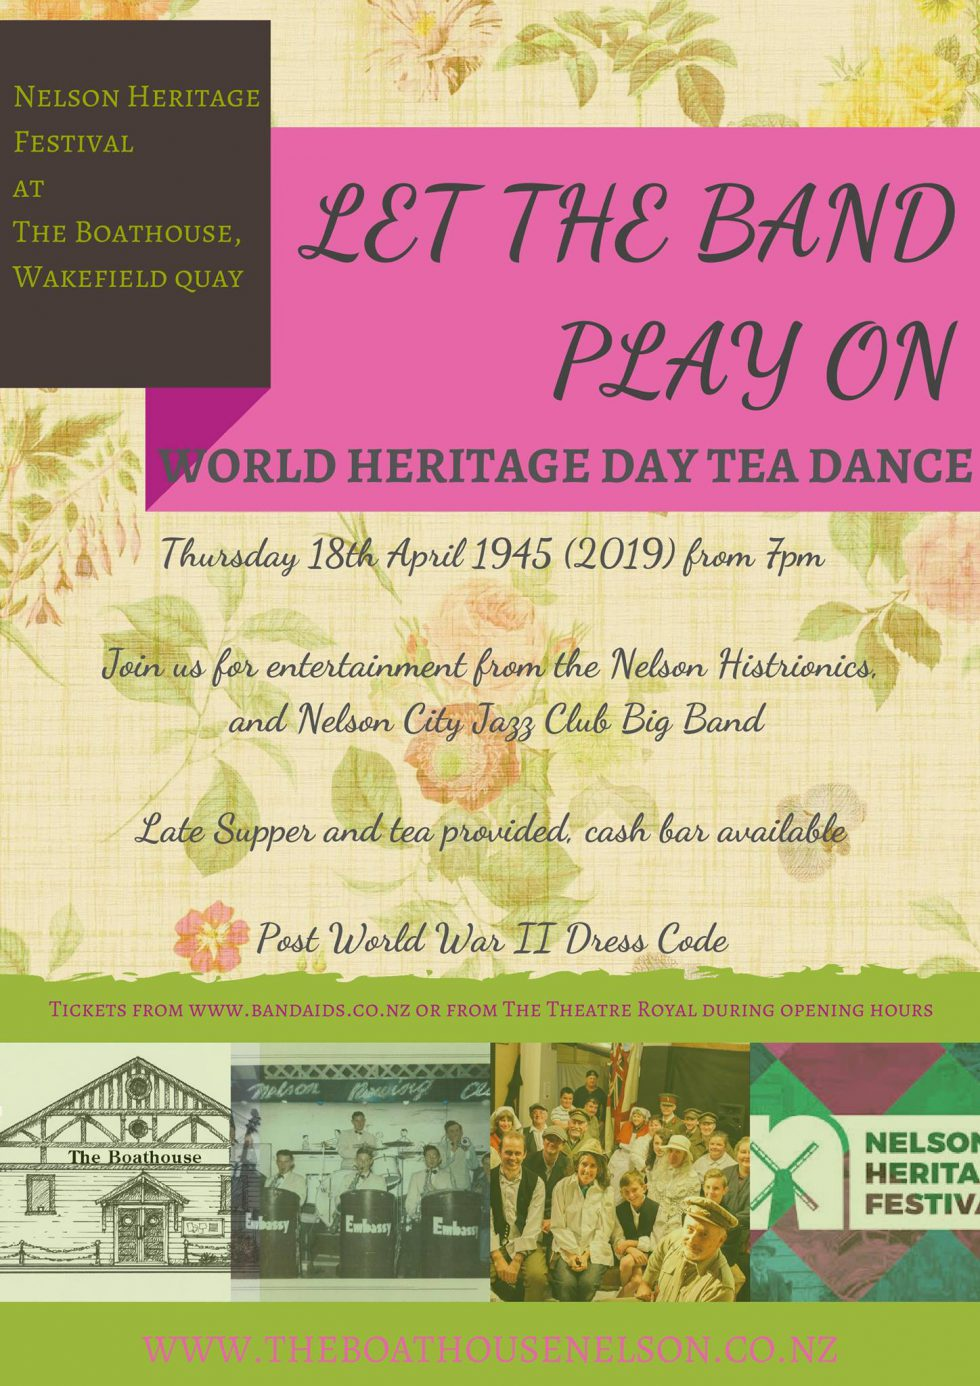 Let The Band Play On! The World Heritage Day Tea Dance 🗓